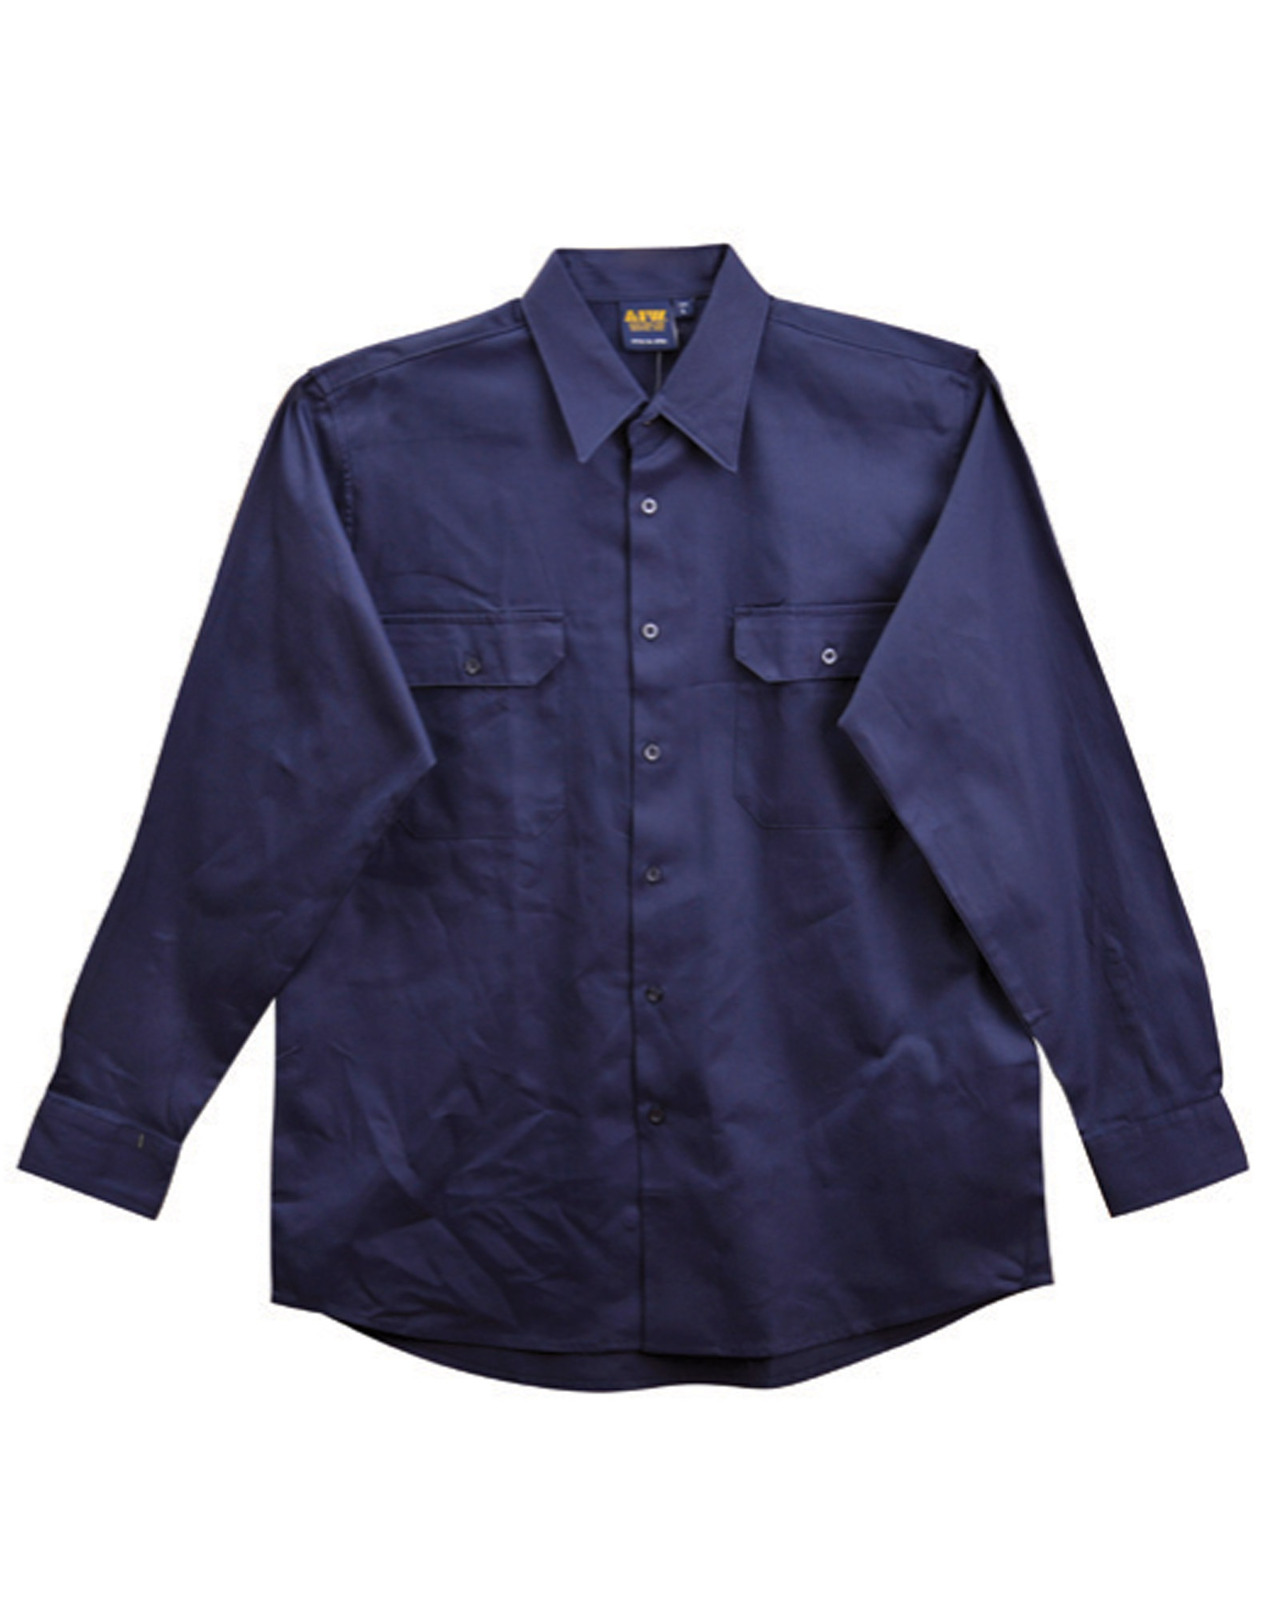 5 of aiw wt04 work shirt 100 cotton drill for 100 cotton work shirts